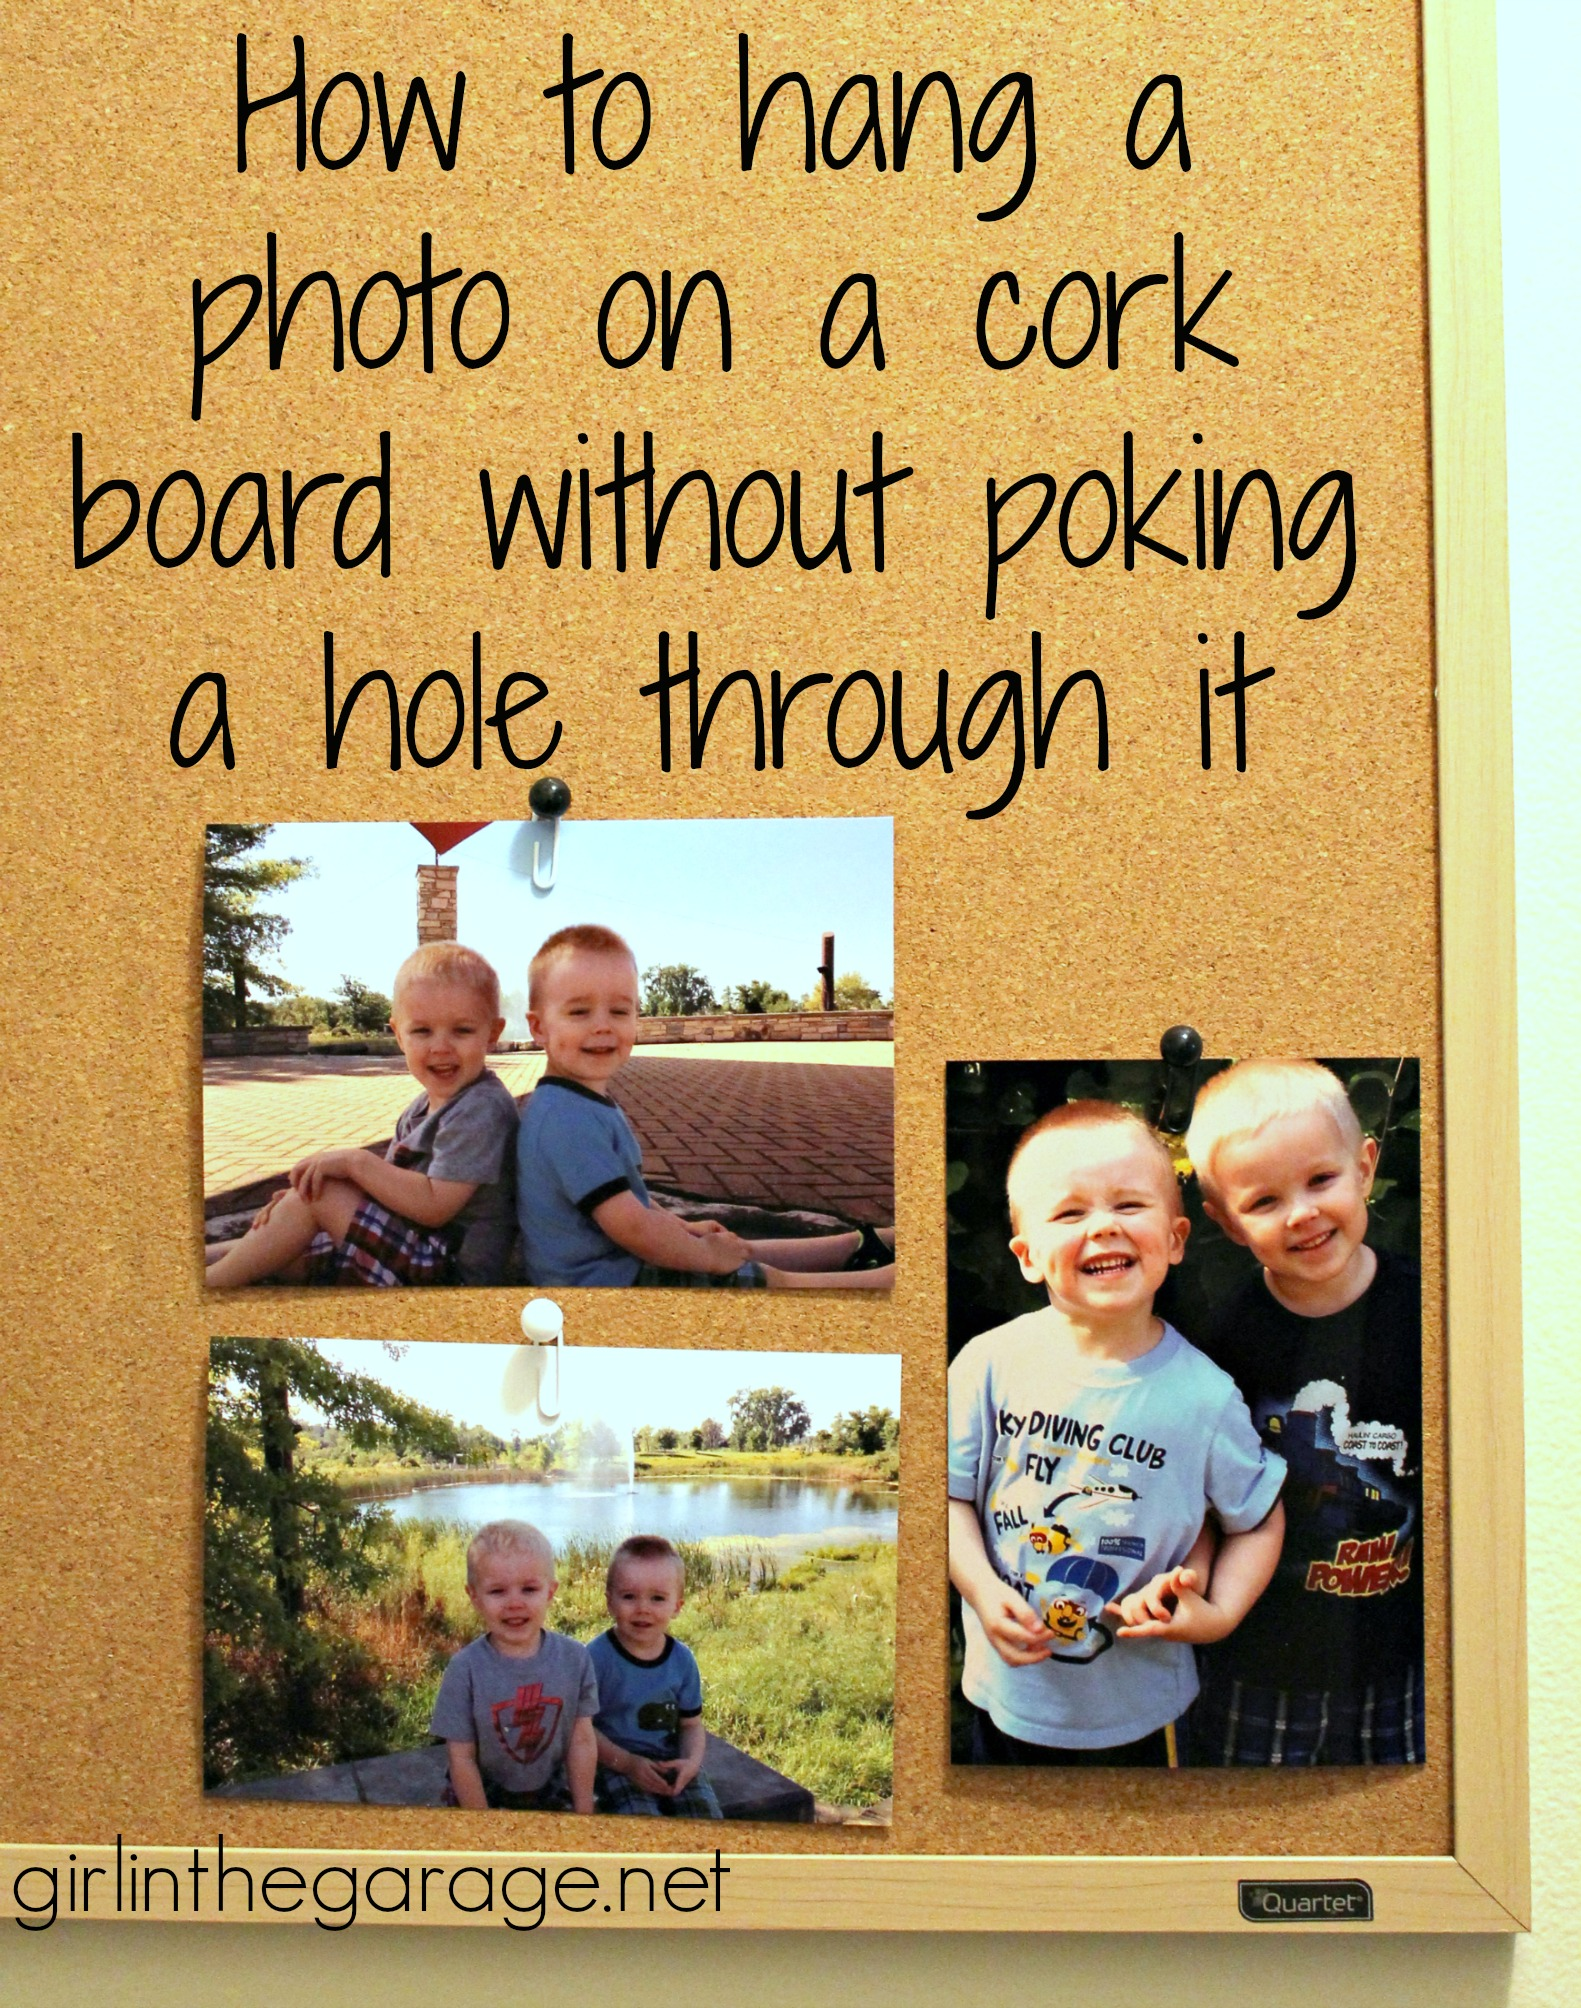 how to hang a photo on a cork board without poking a hole